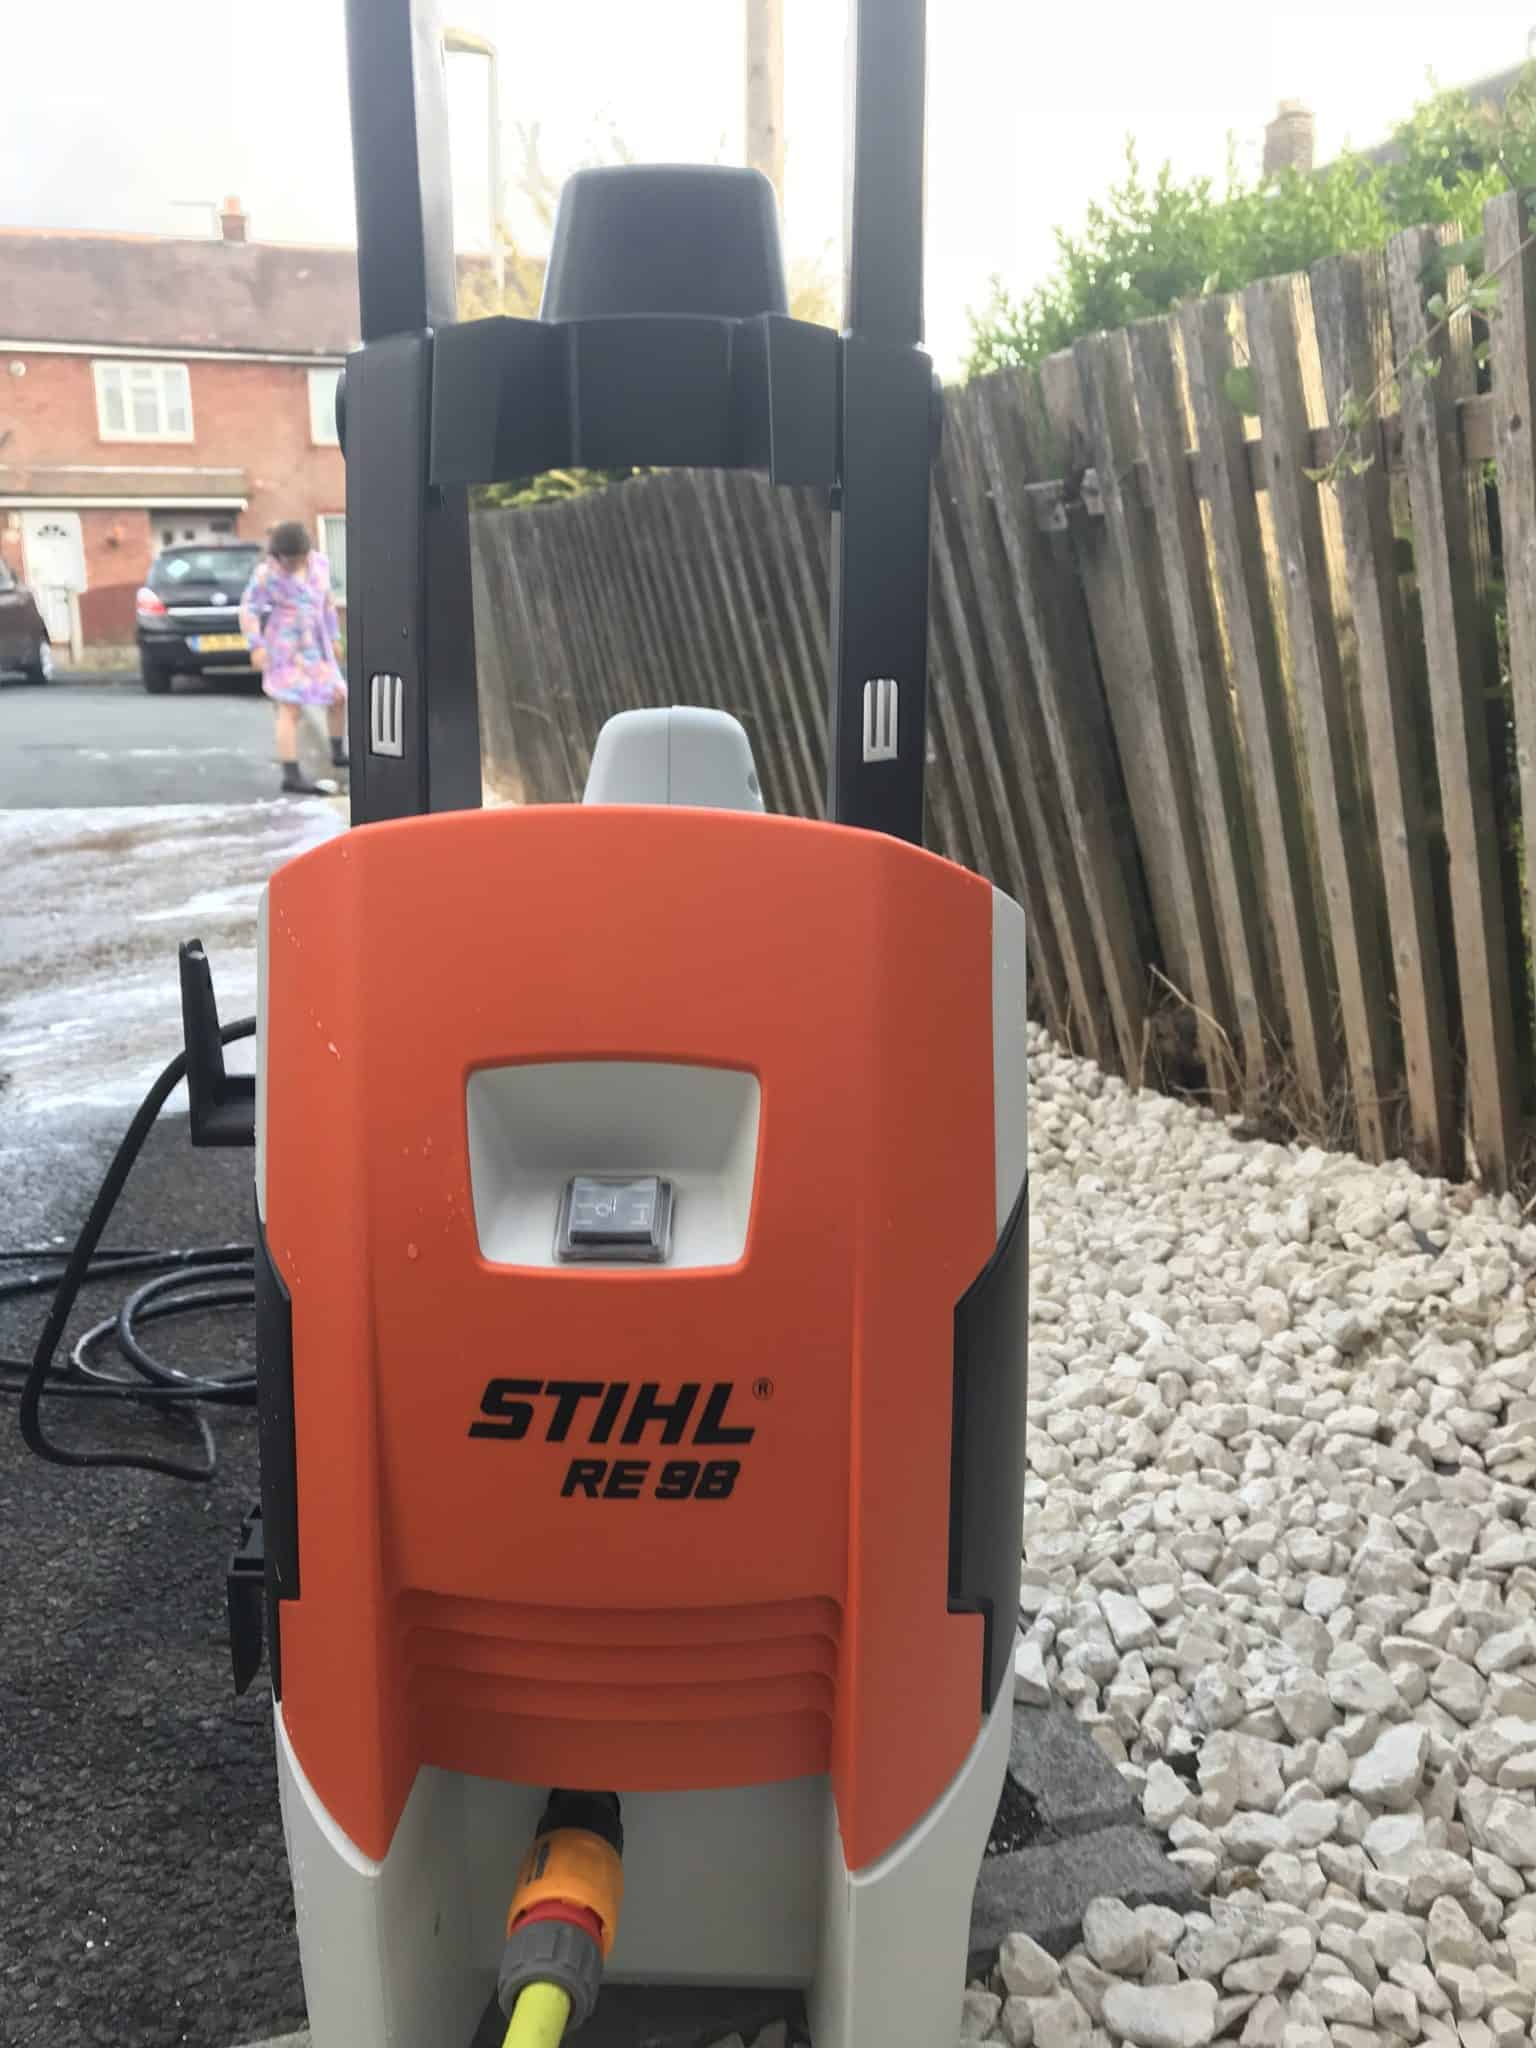 STILH RE 98 pressure washer